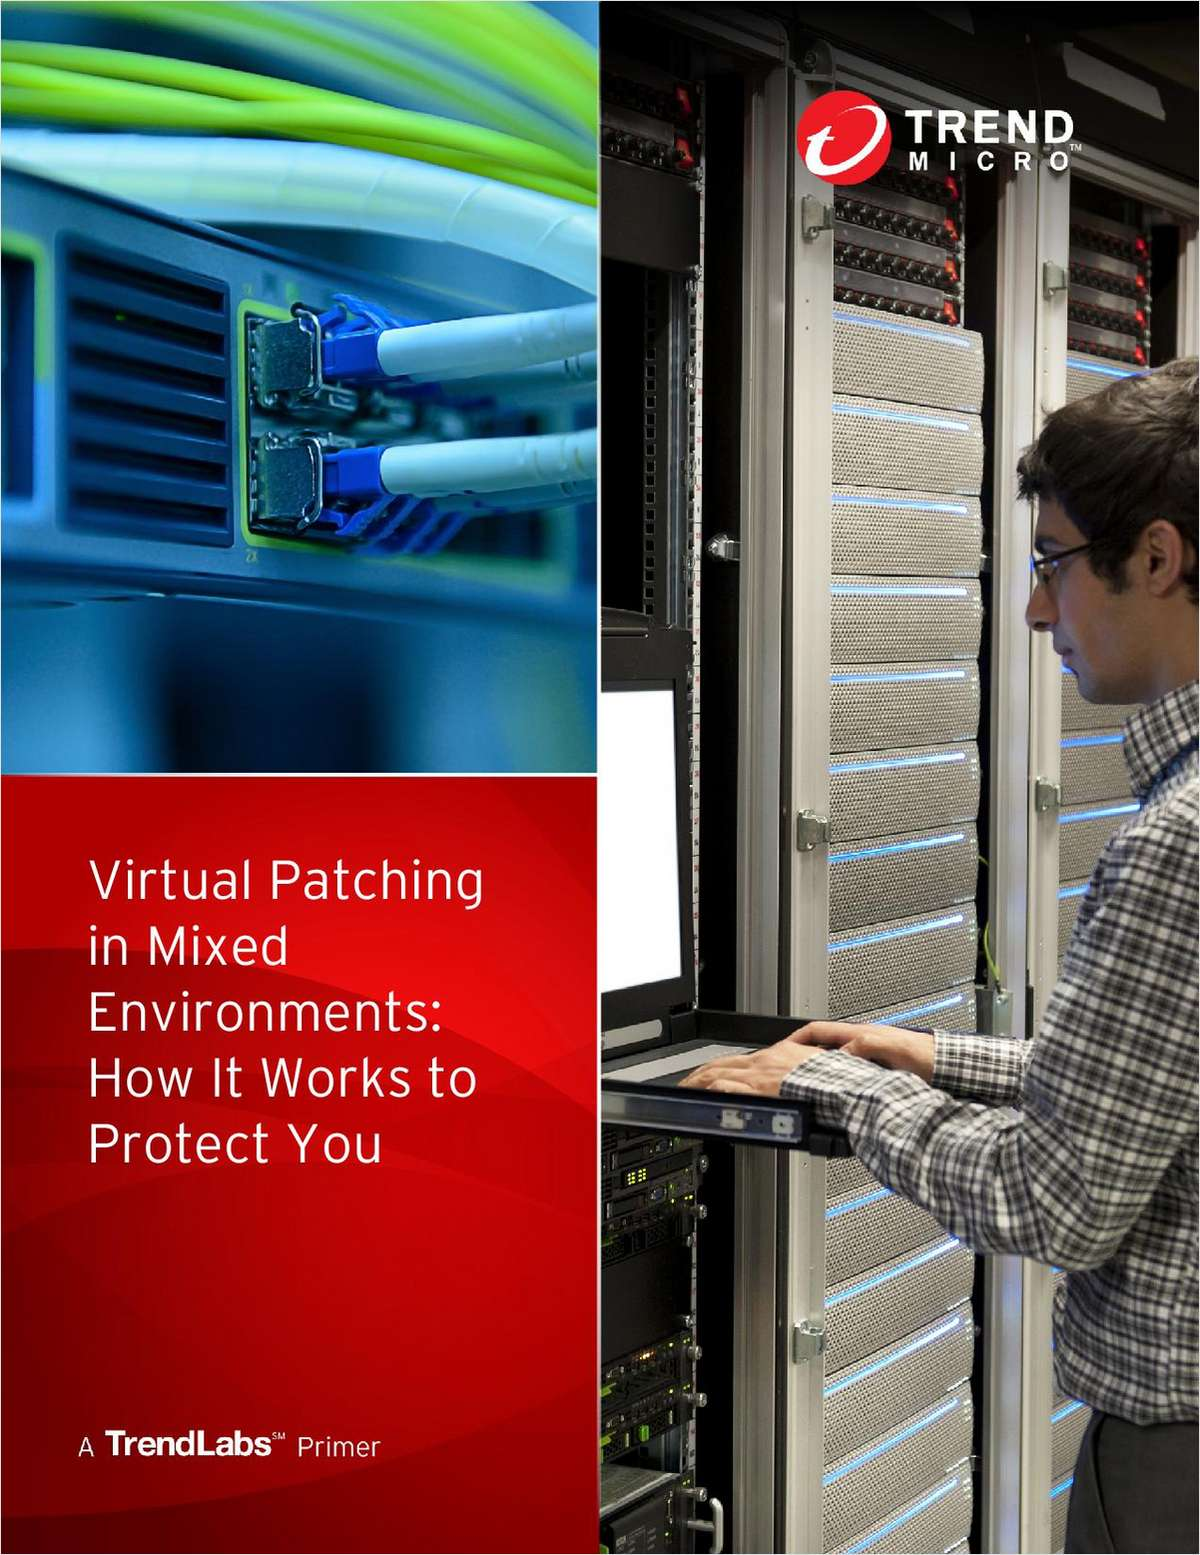 Virtual Patching in Mixed Environments: How It Works to Protect You